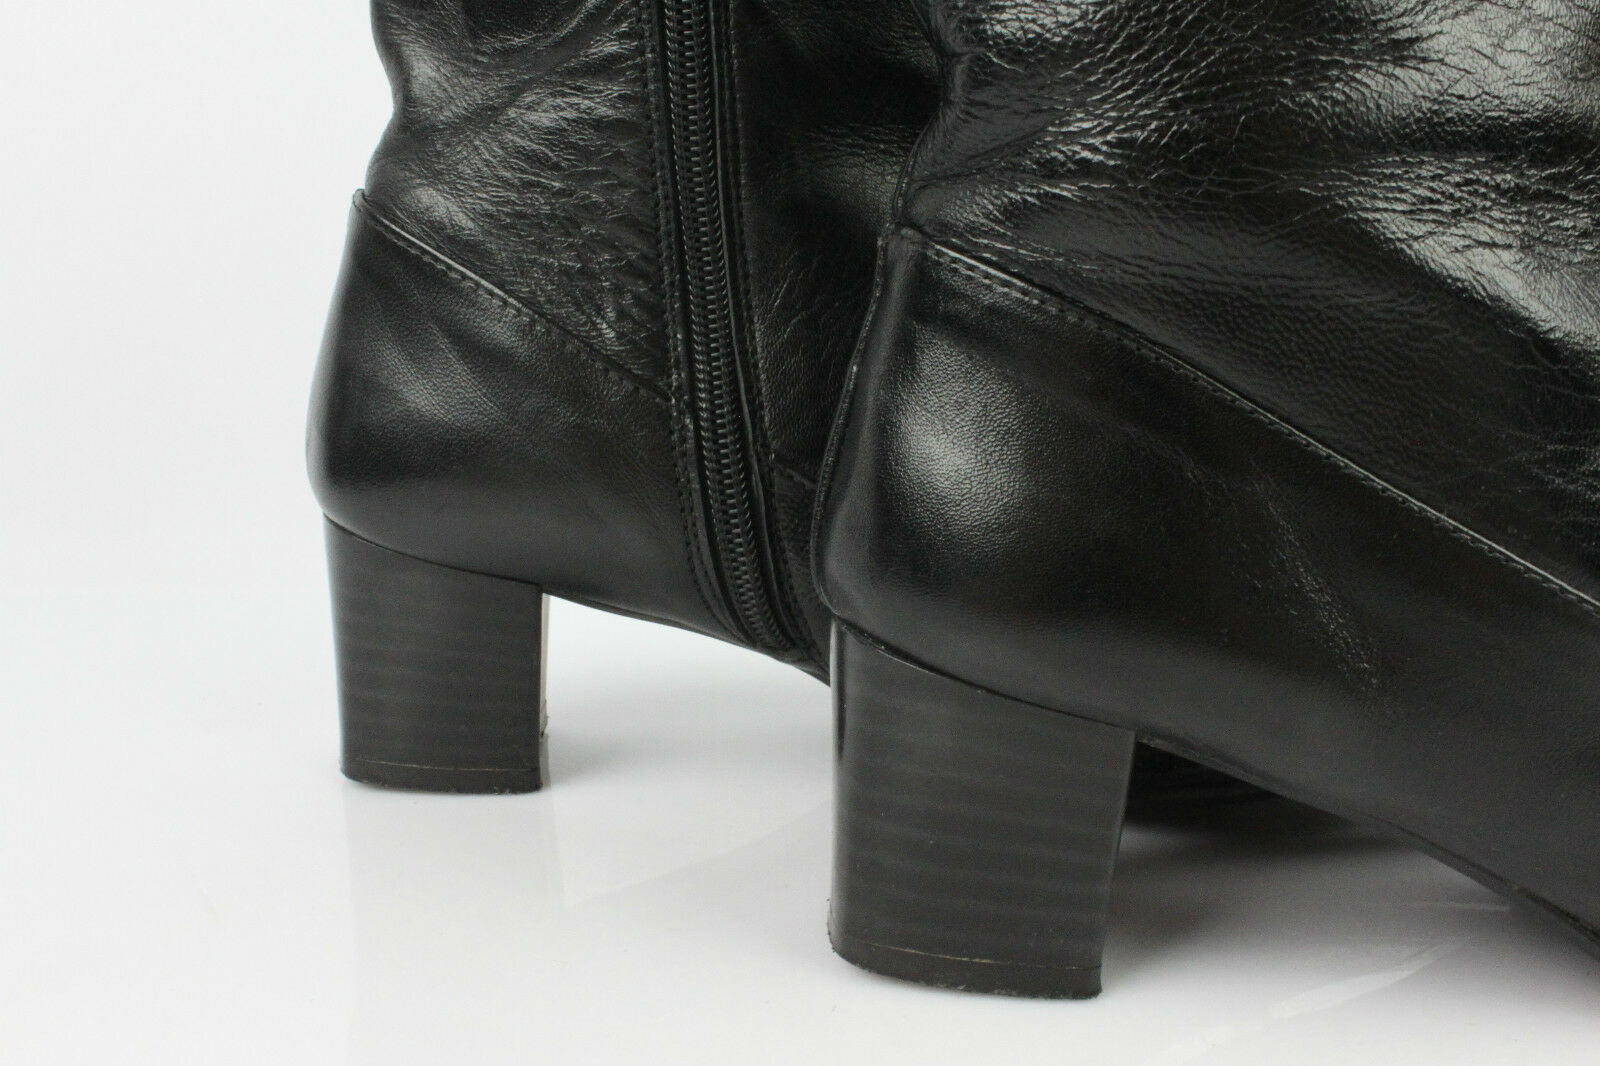 Boots SAN MARINA Black Leather T 38 VERY GOOD CONDITION